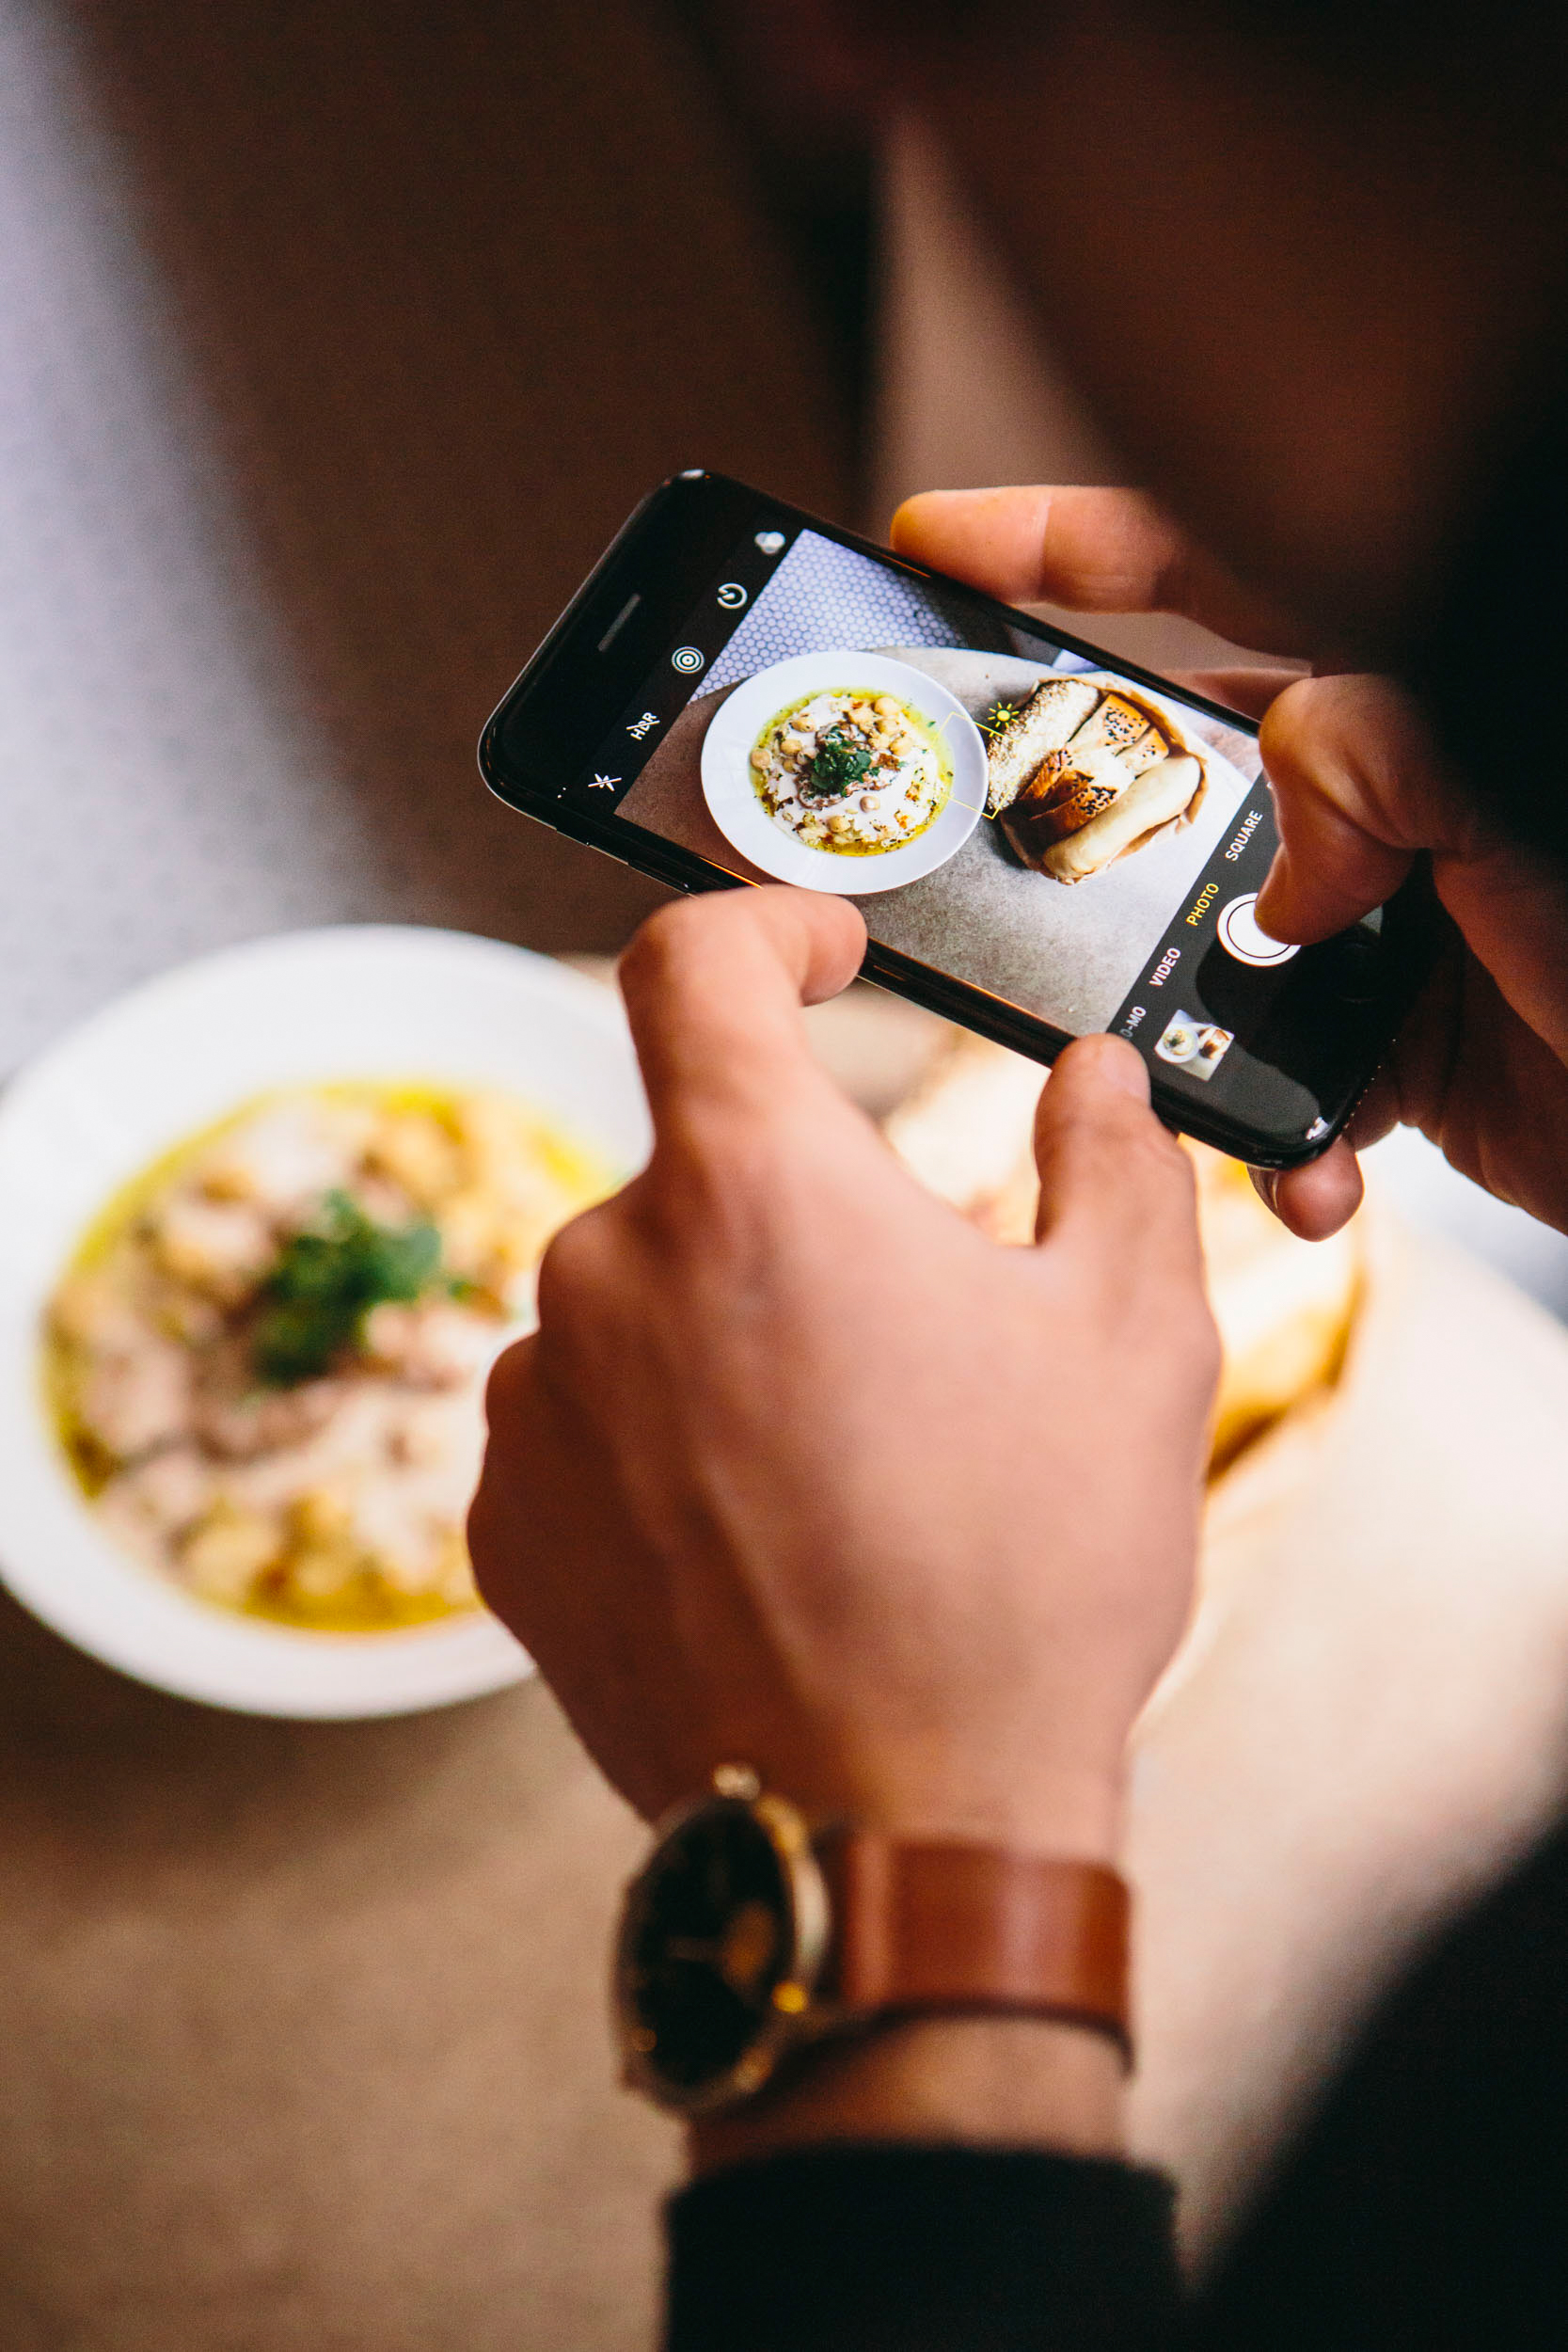 Interview with Elie Yobeid lebanonbyalocal Instagrammer and foodie captured by Paris Photographer Federico Guendel www.iheartparis.fr